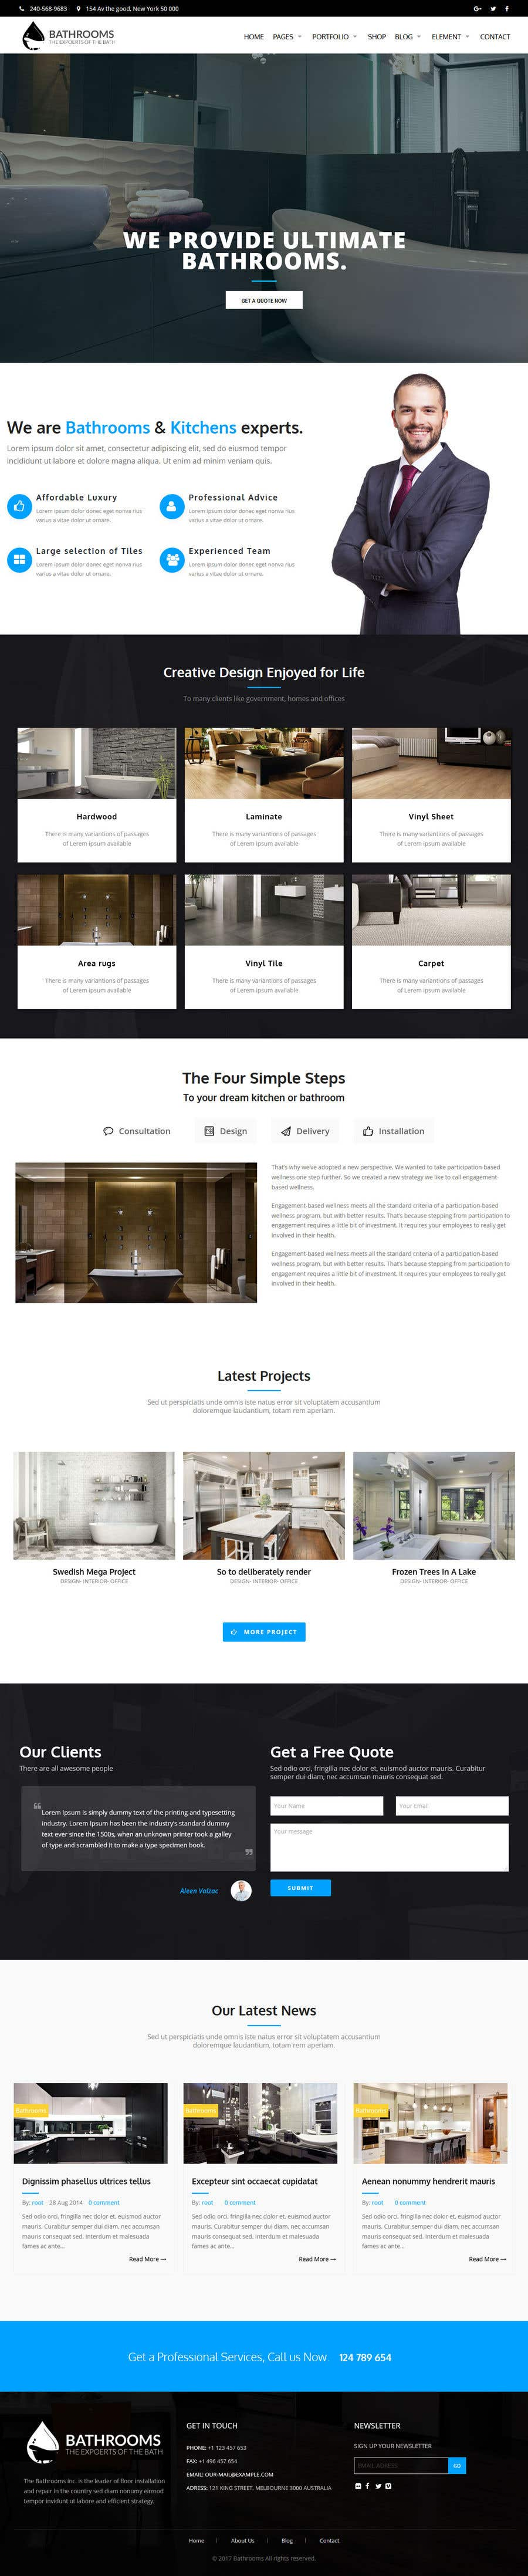 Entry #7 by Ammar619 for Design 3 mockup website pages for me for a ...